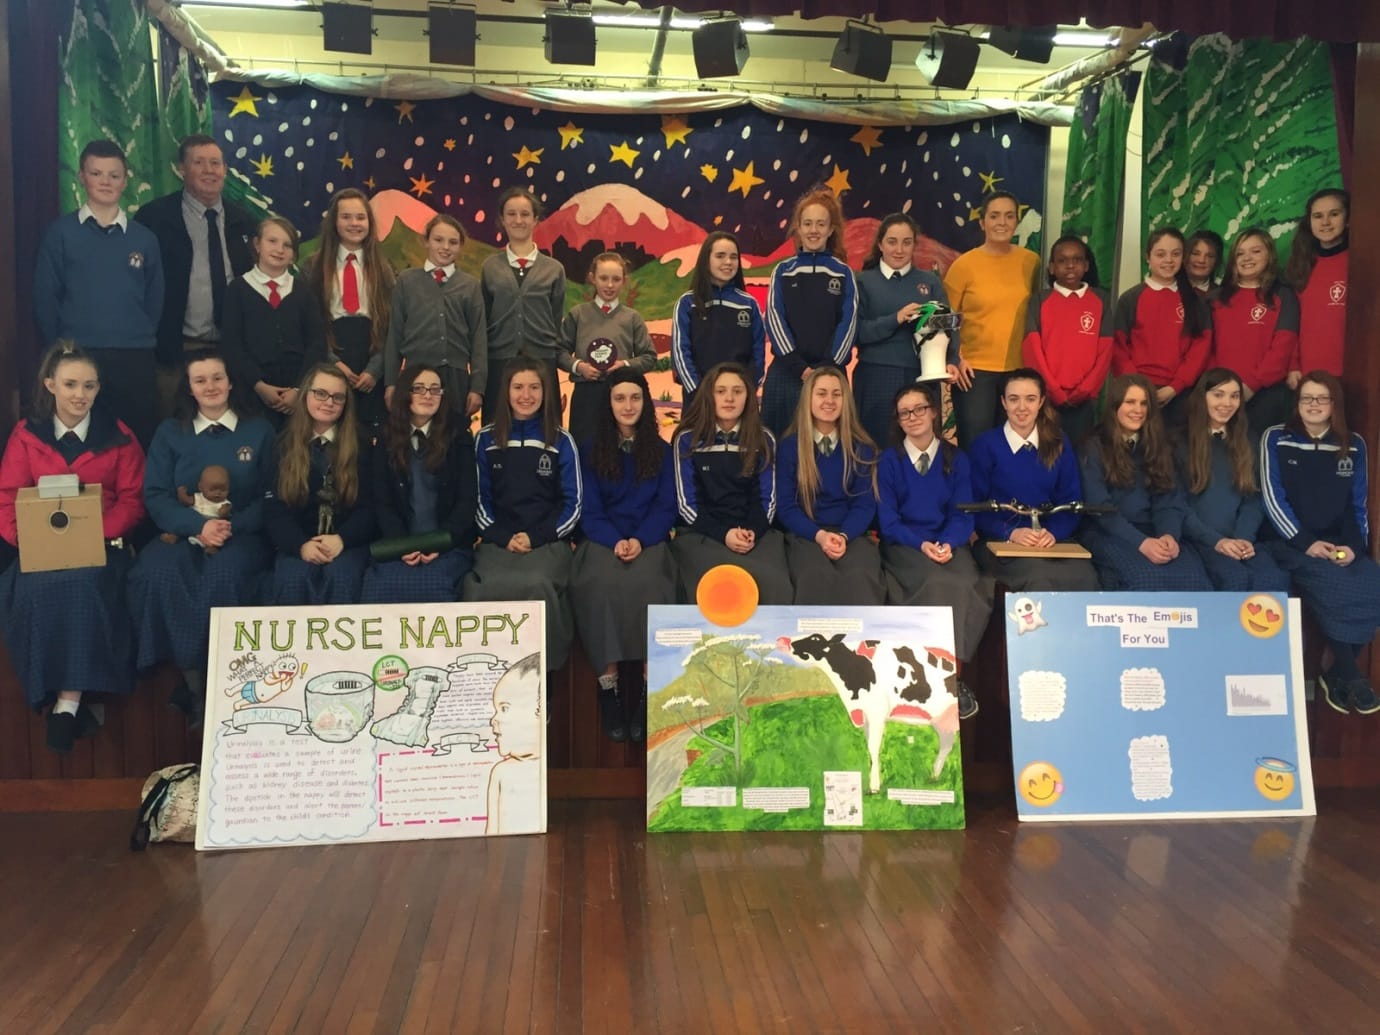 2016 Jan: Young Scientists from Desmond College and pupils from Scoil Iosaf that recently took part in the BT Young Scientist and the Primary Science fair in the RDS.